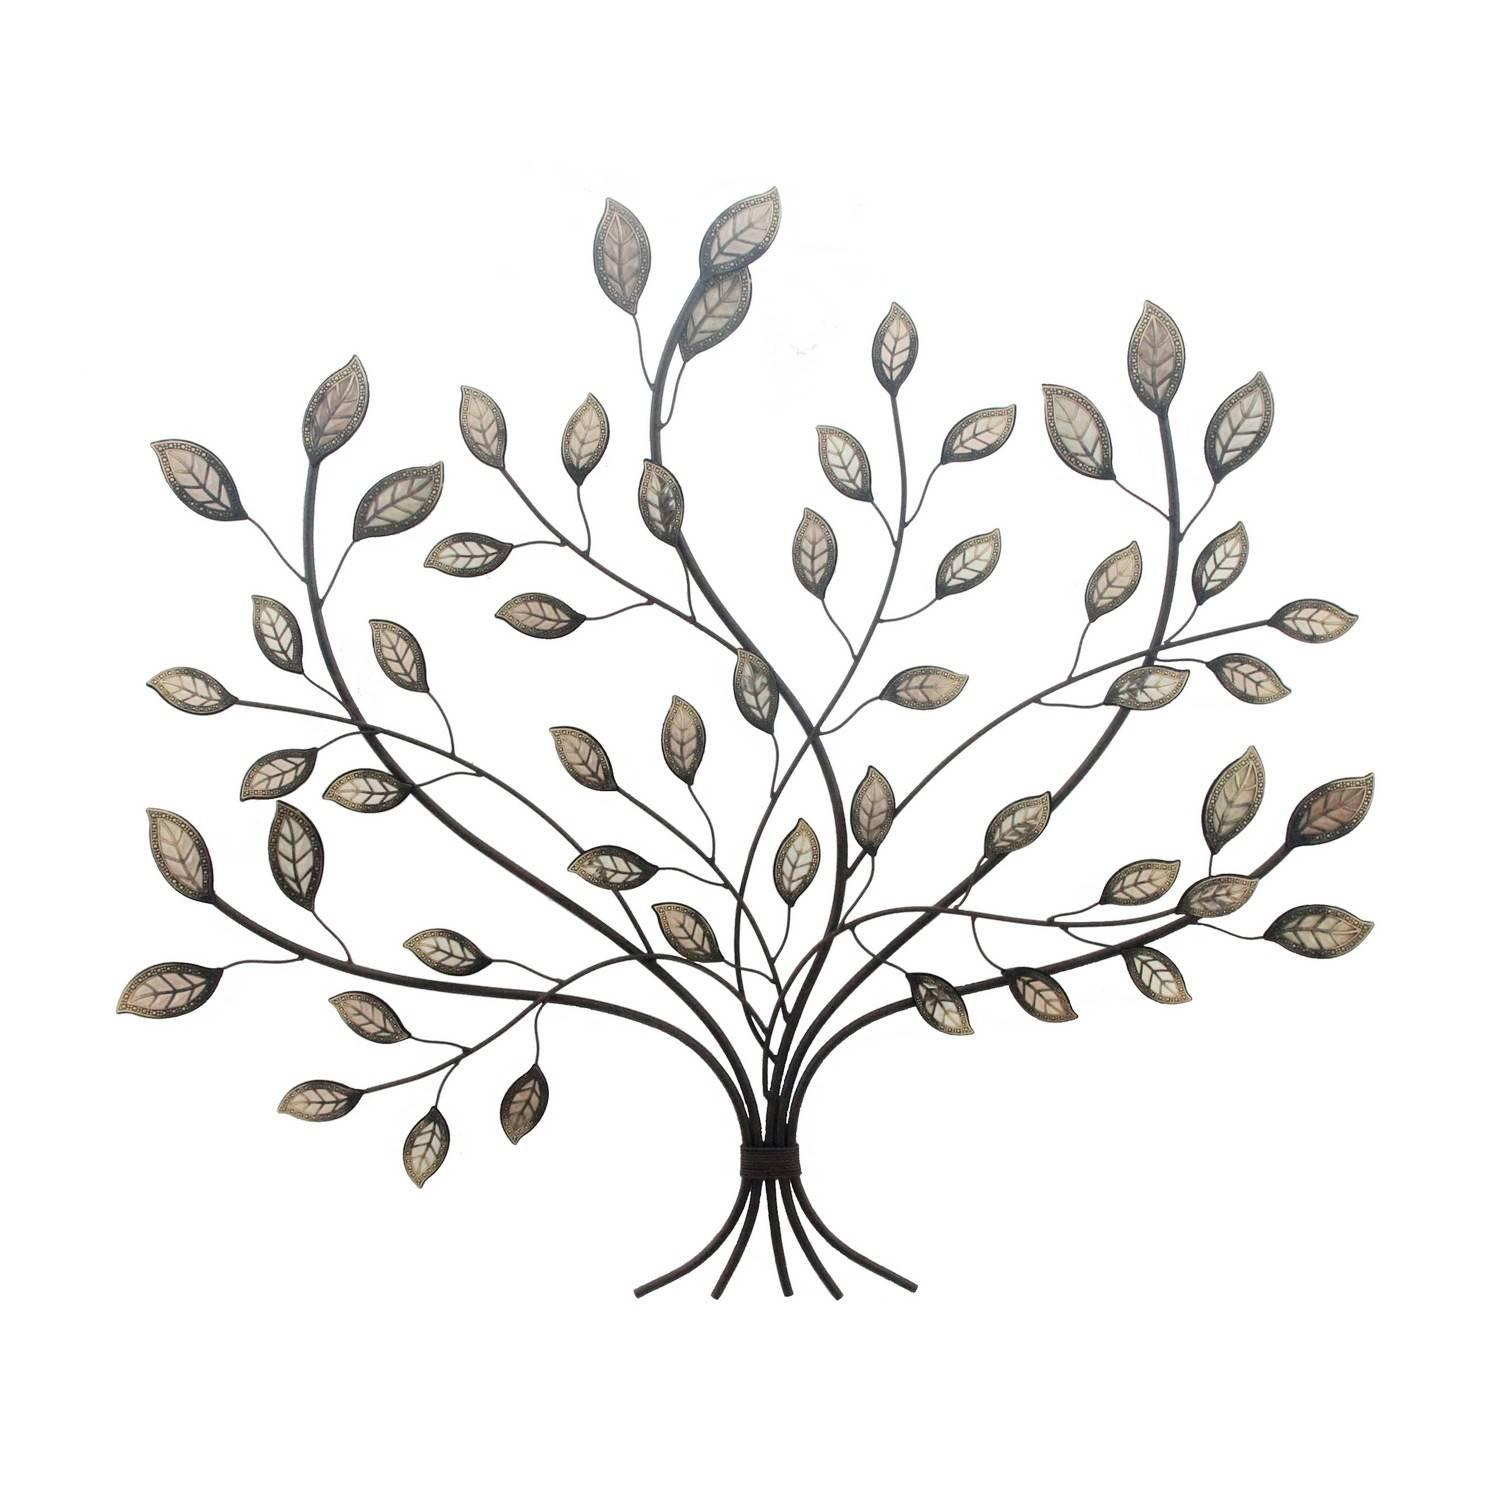 Wall Art Designs: Leaf Wall Art Wall Art Hanging Rustic Bronze For Most Current Metal Wall Art Trees And Leaves (View 2 of 20)